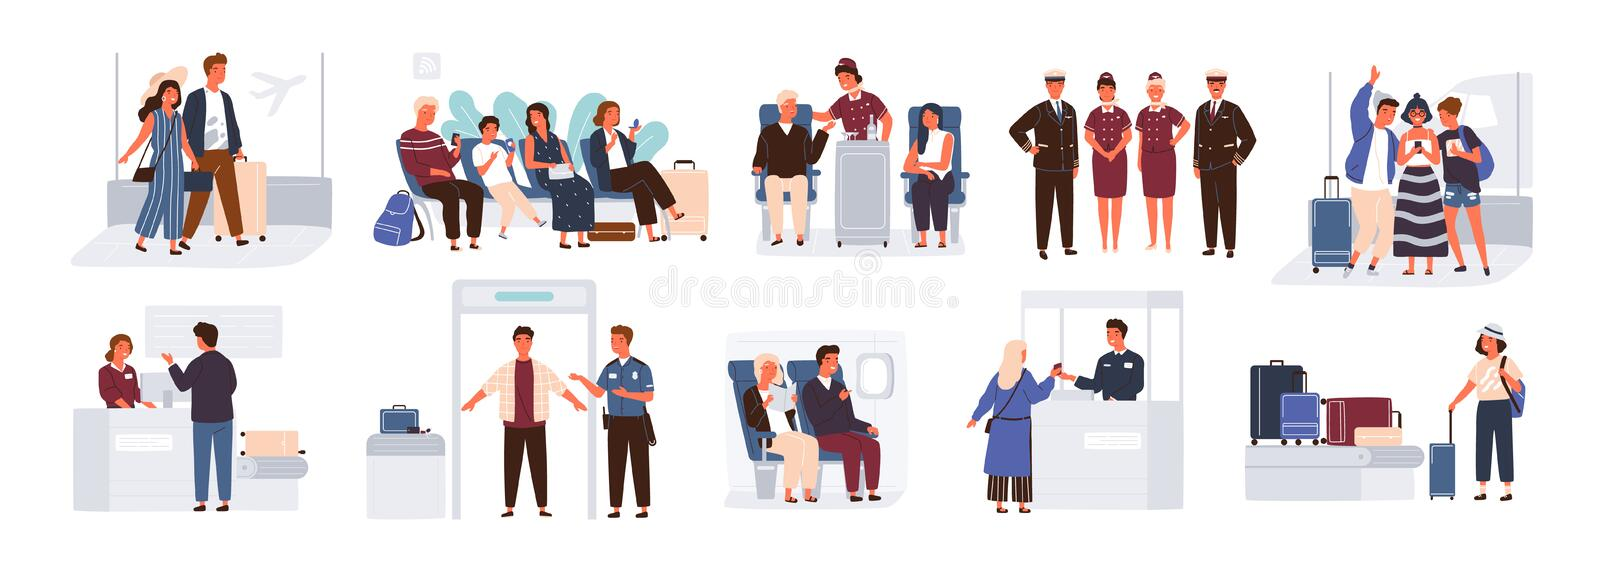 Bundle of scenes with tourists or aircraft passengers. Friends, families with children, couples at check-in, airport royalty free illustration